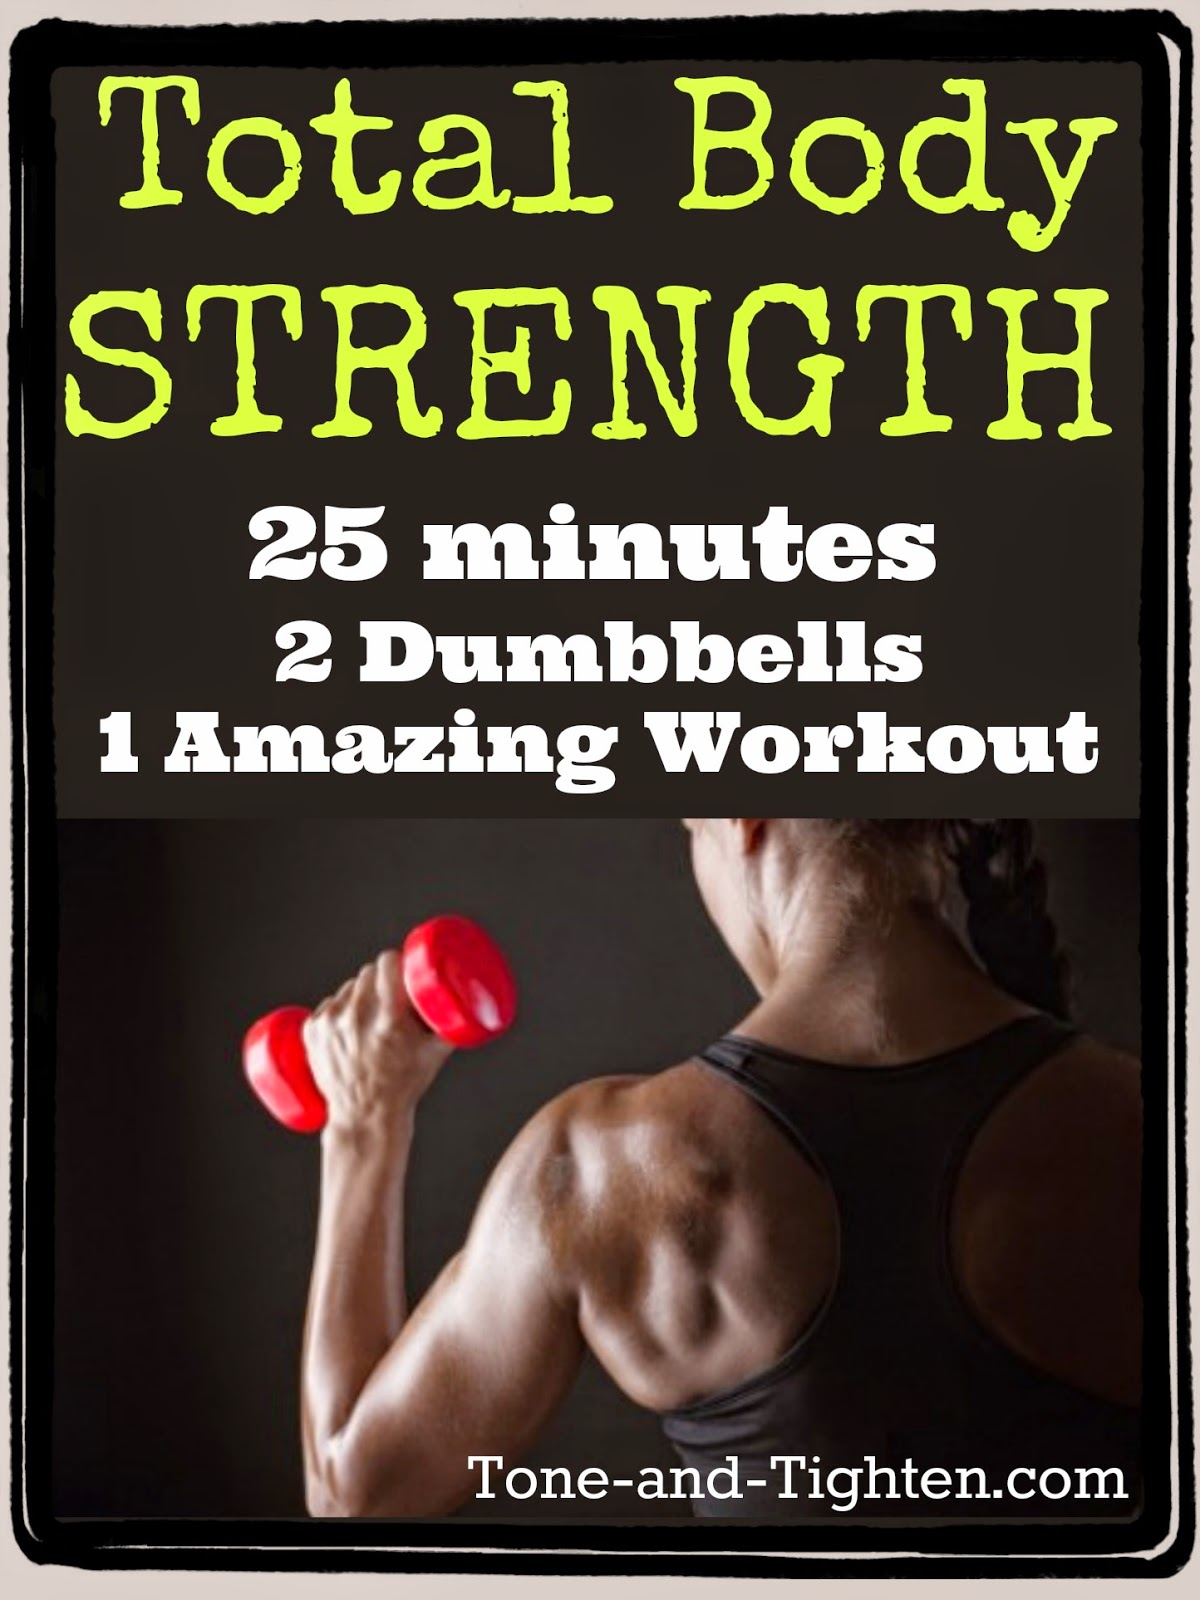 http://tone-and-tighten.com/2014/04/total-body-strength-training-video-with-weights.html